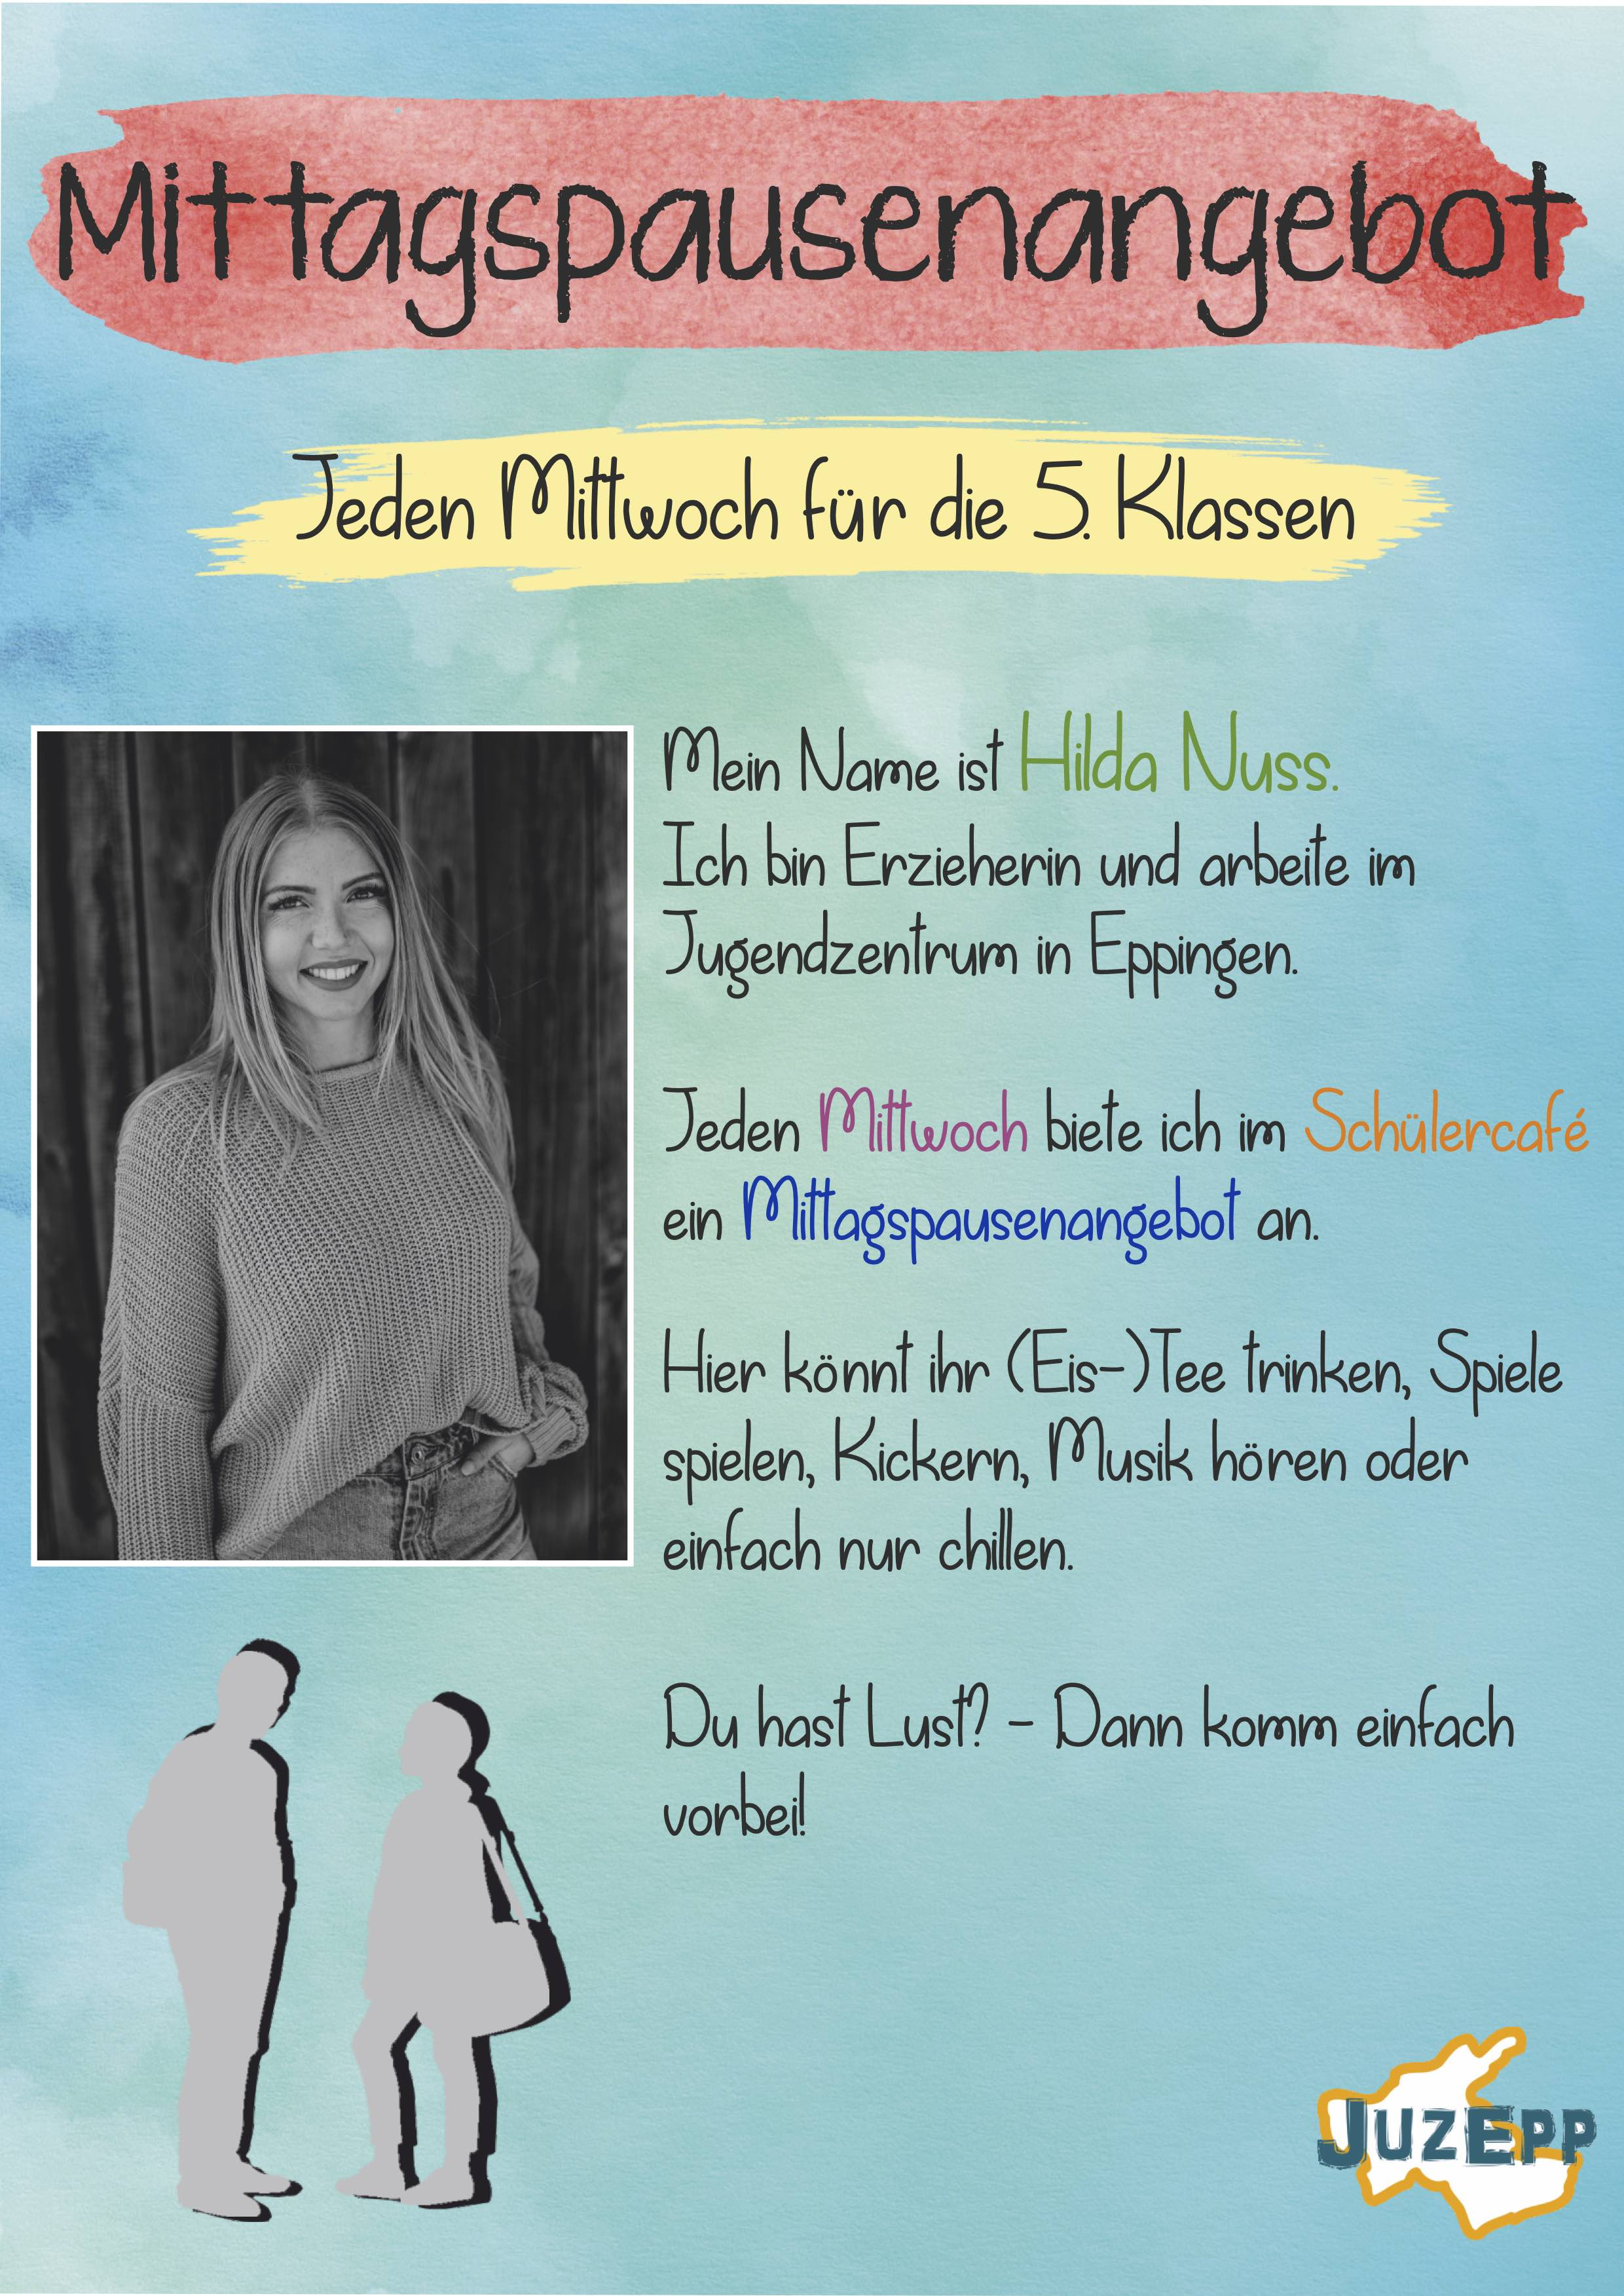 Mittagspausenangebot Flyer